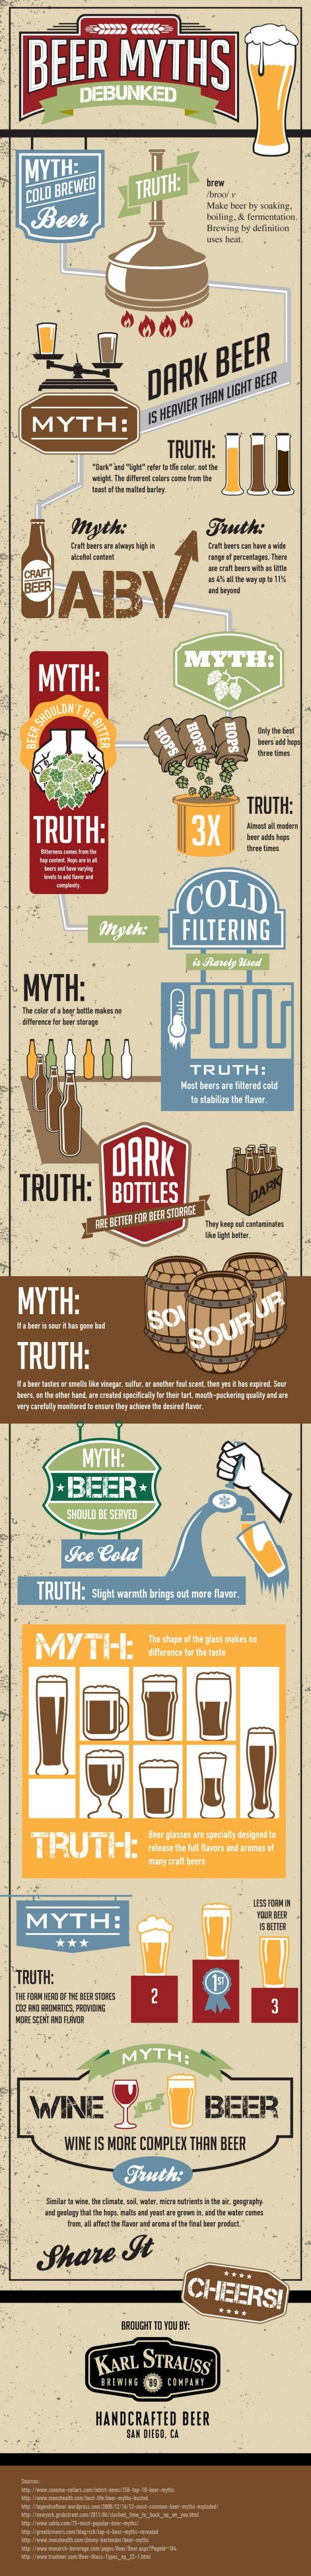 12 Common Beer Myths Debunked by Brewers